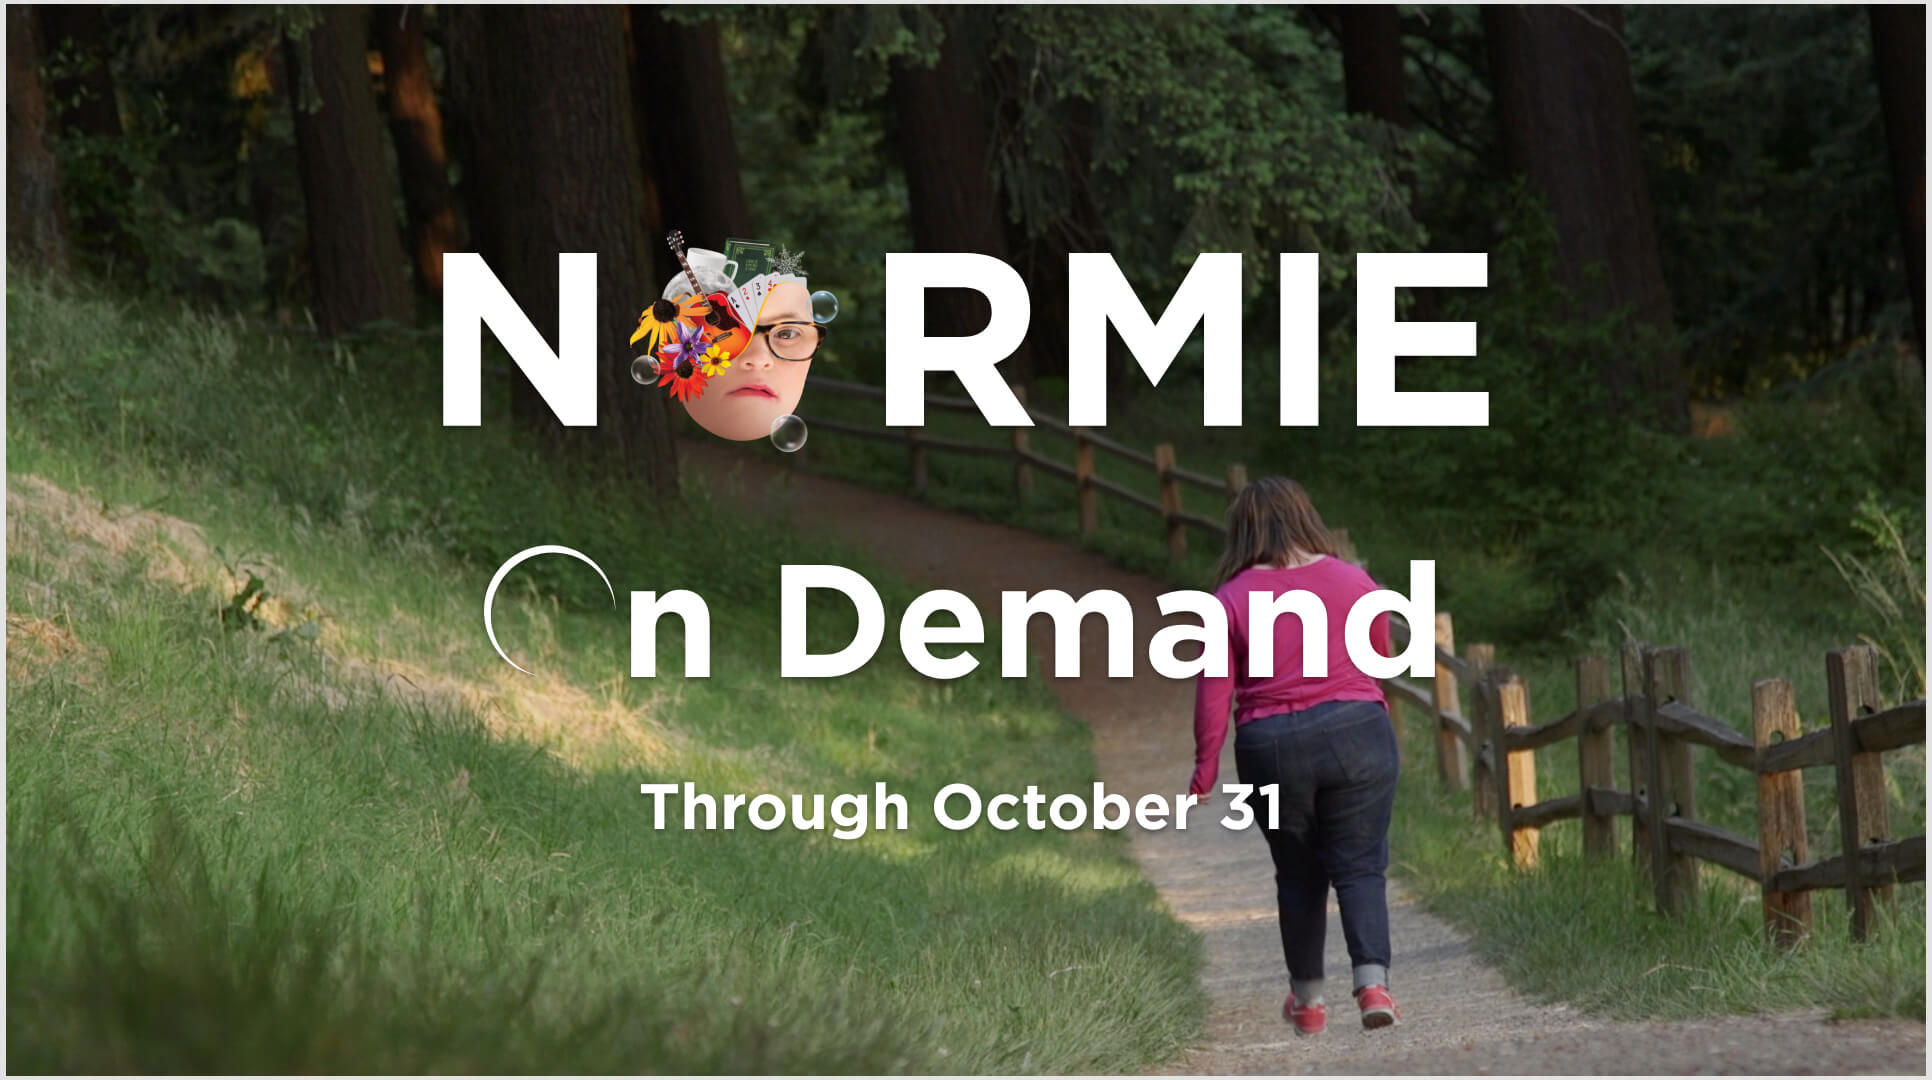 NORMIE On-Demand Through October